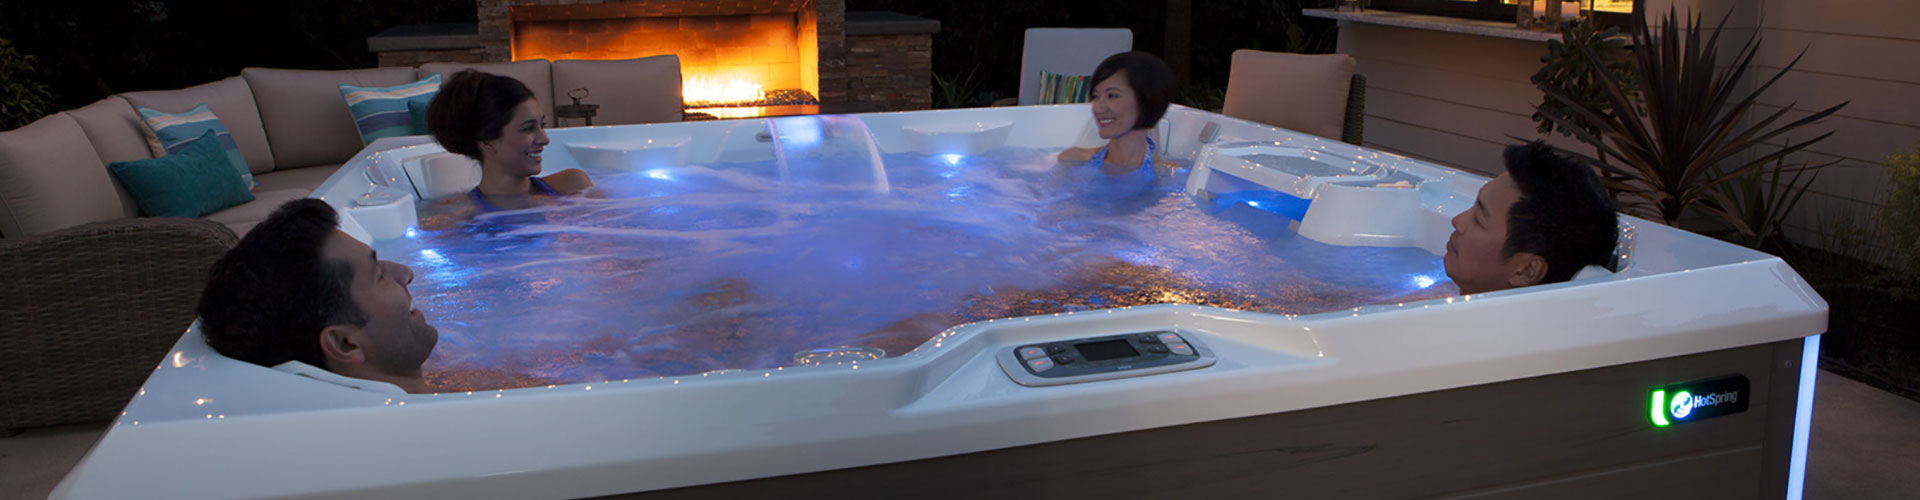 Hot Tubbing – 3 Amazing Benefits, Hot Tubs Carroll, Portable Spas Sale Des Moines